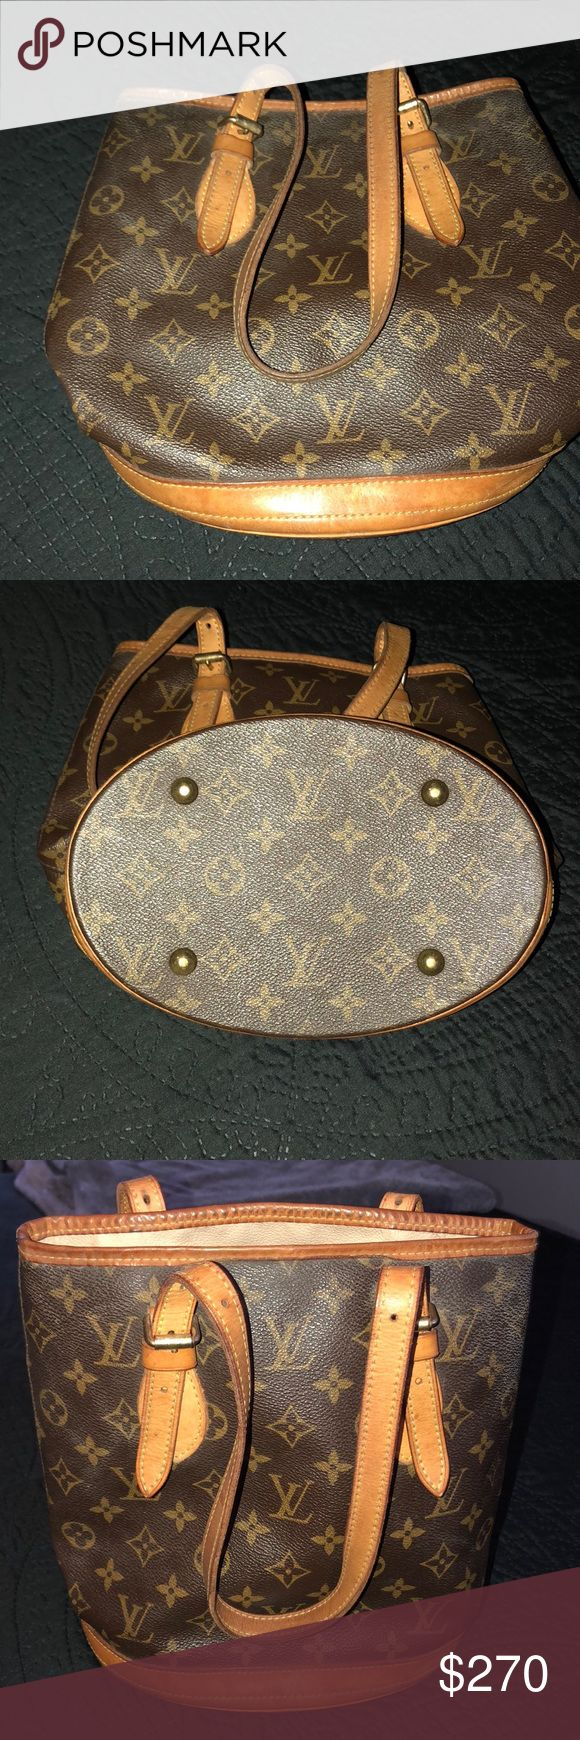 Authentic Louis Vuitton Petite Bucket Handbag Bag is in great condition, I recently bought it from another Poshmark seller. I'm willing to sell or trade for a bigger bag. Bags Shoulder Bags